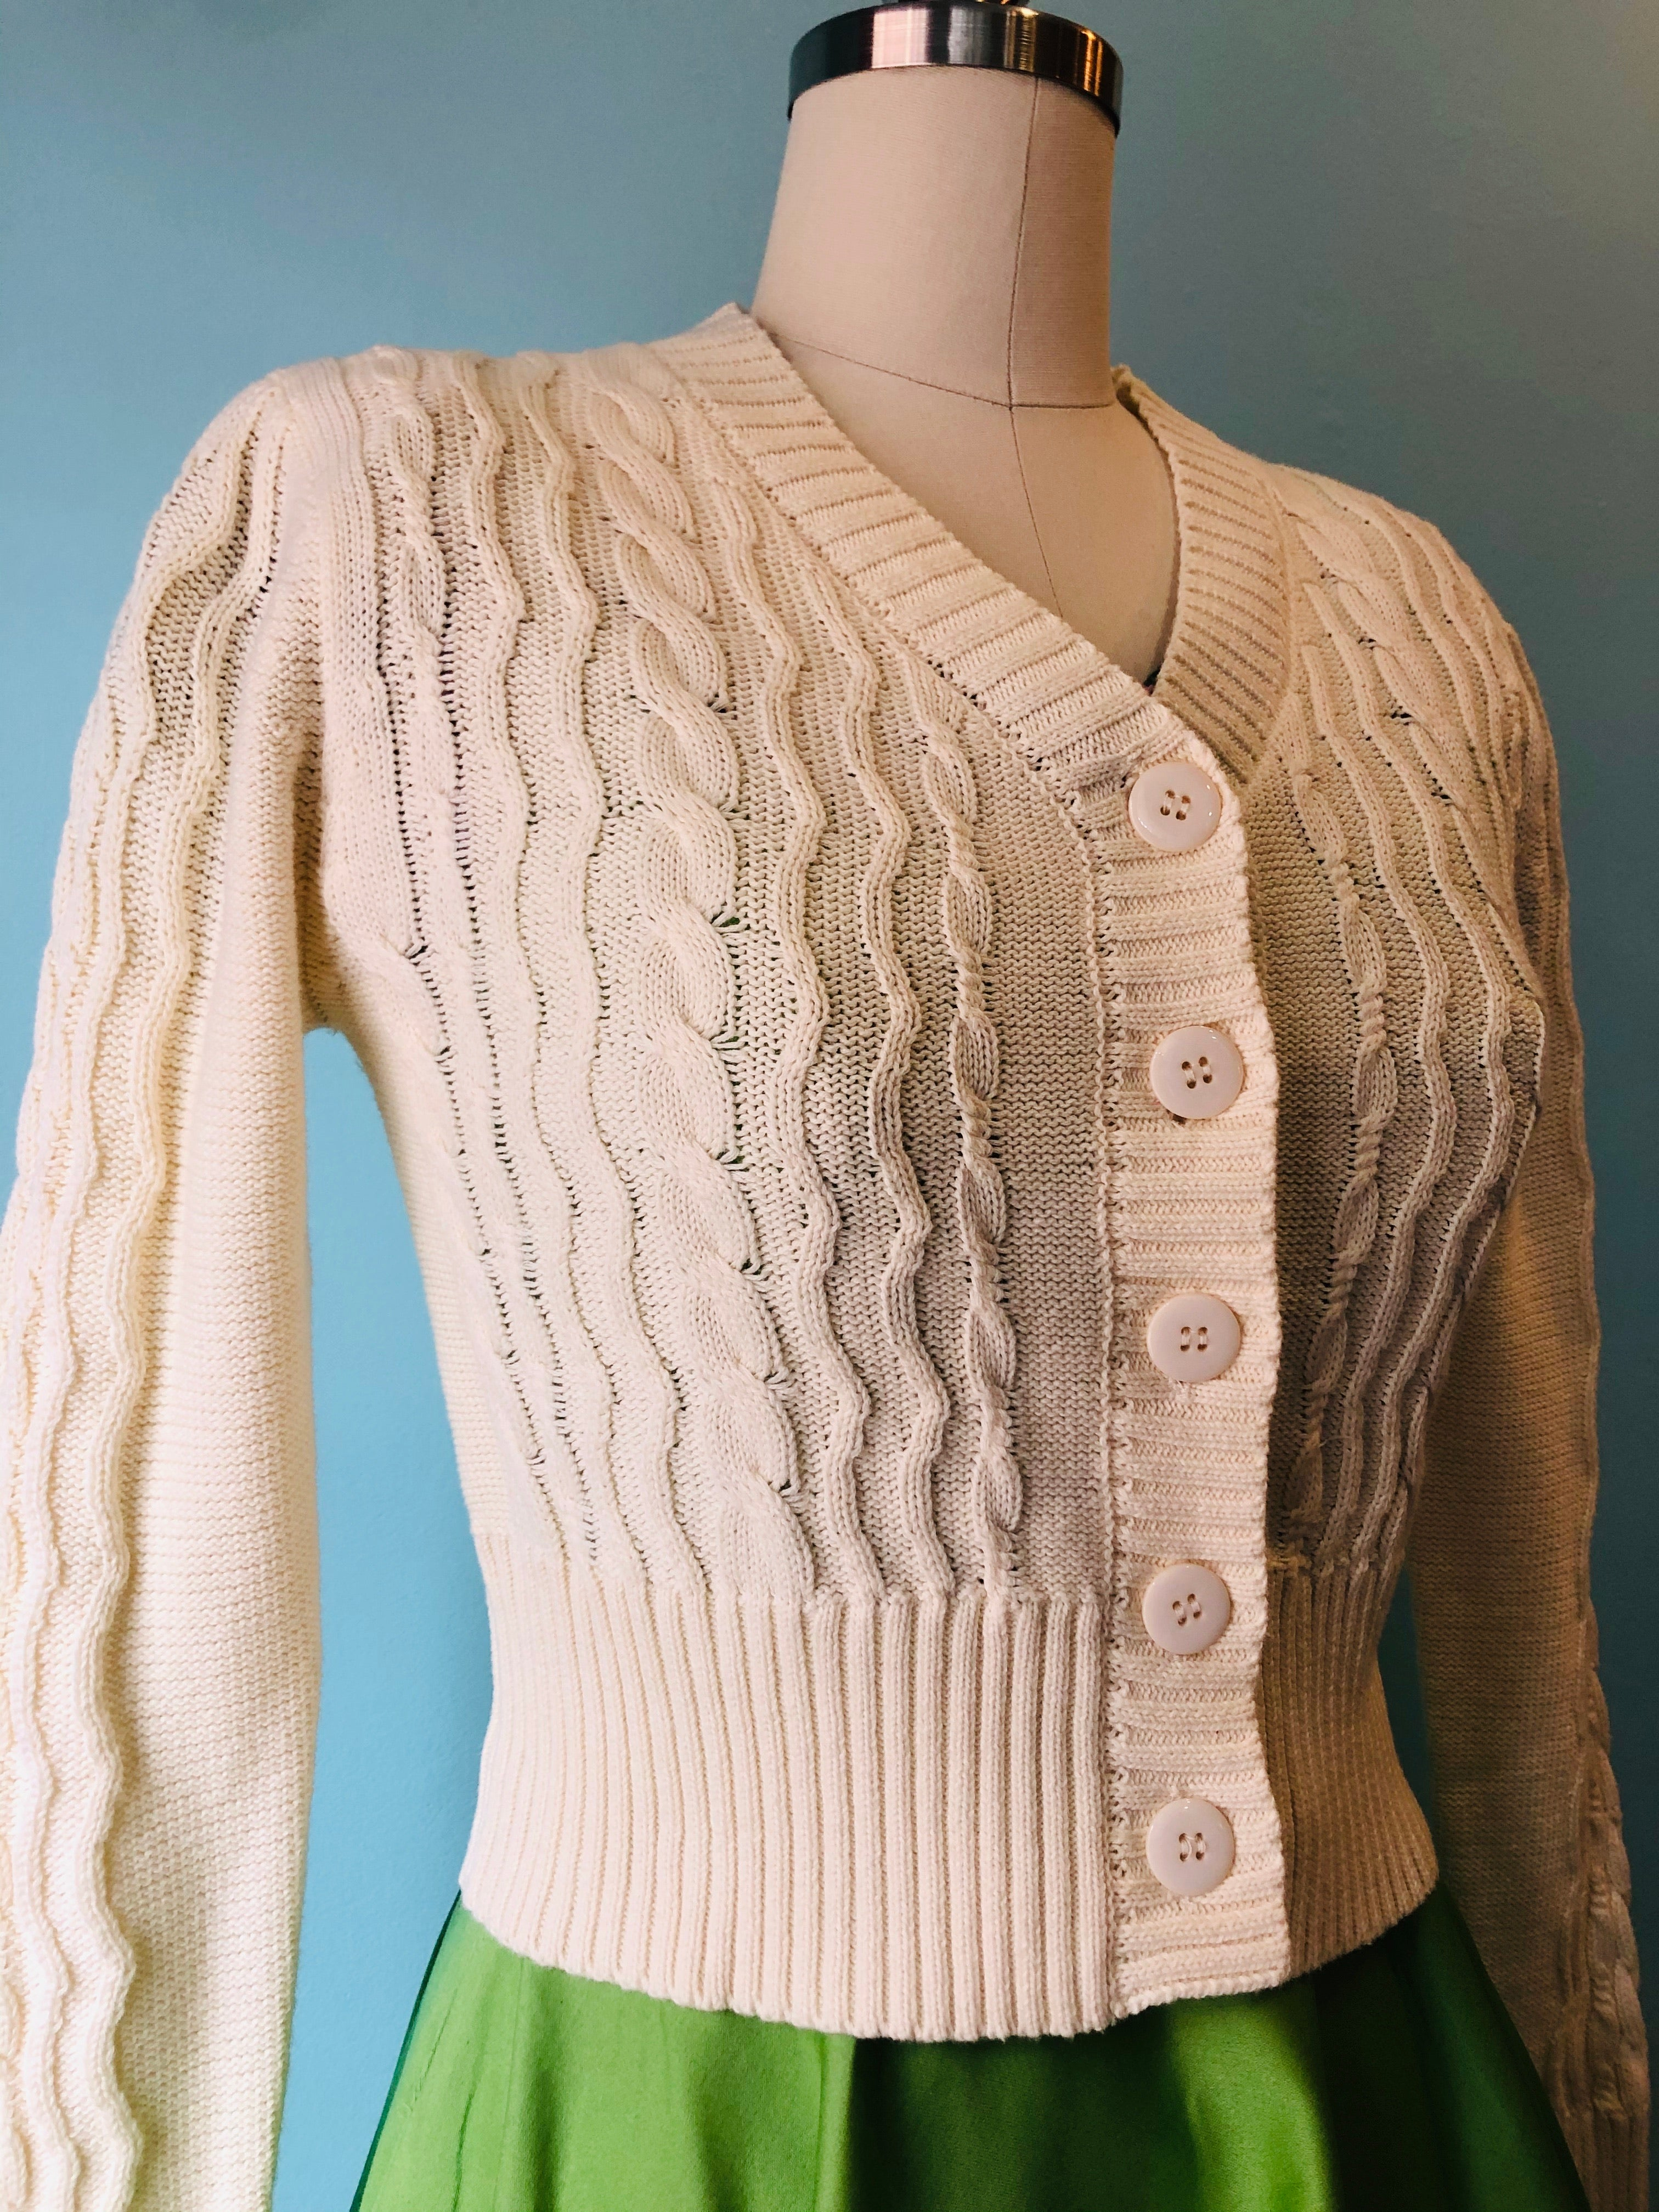 Camilla Fisherman's Sweater in Cream by Voodoo Vixen